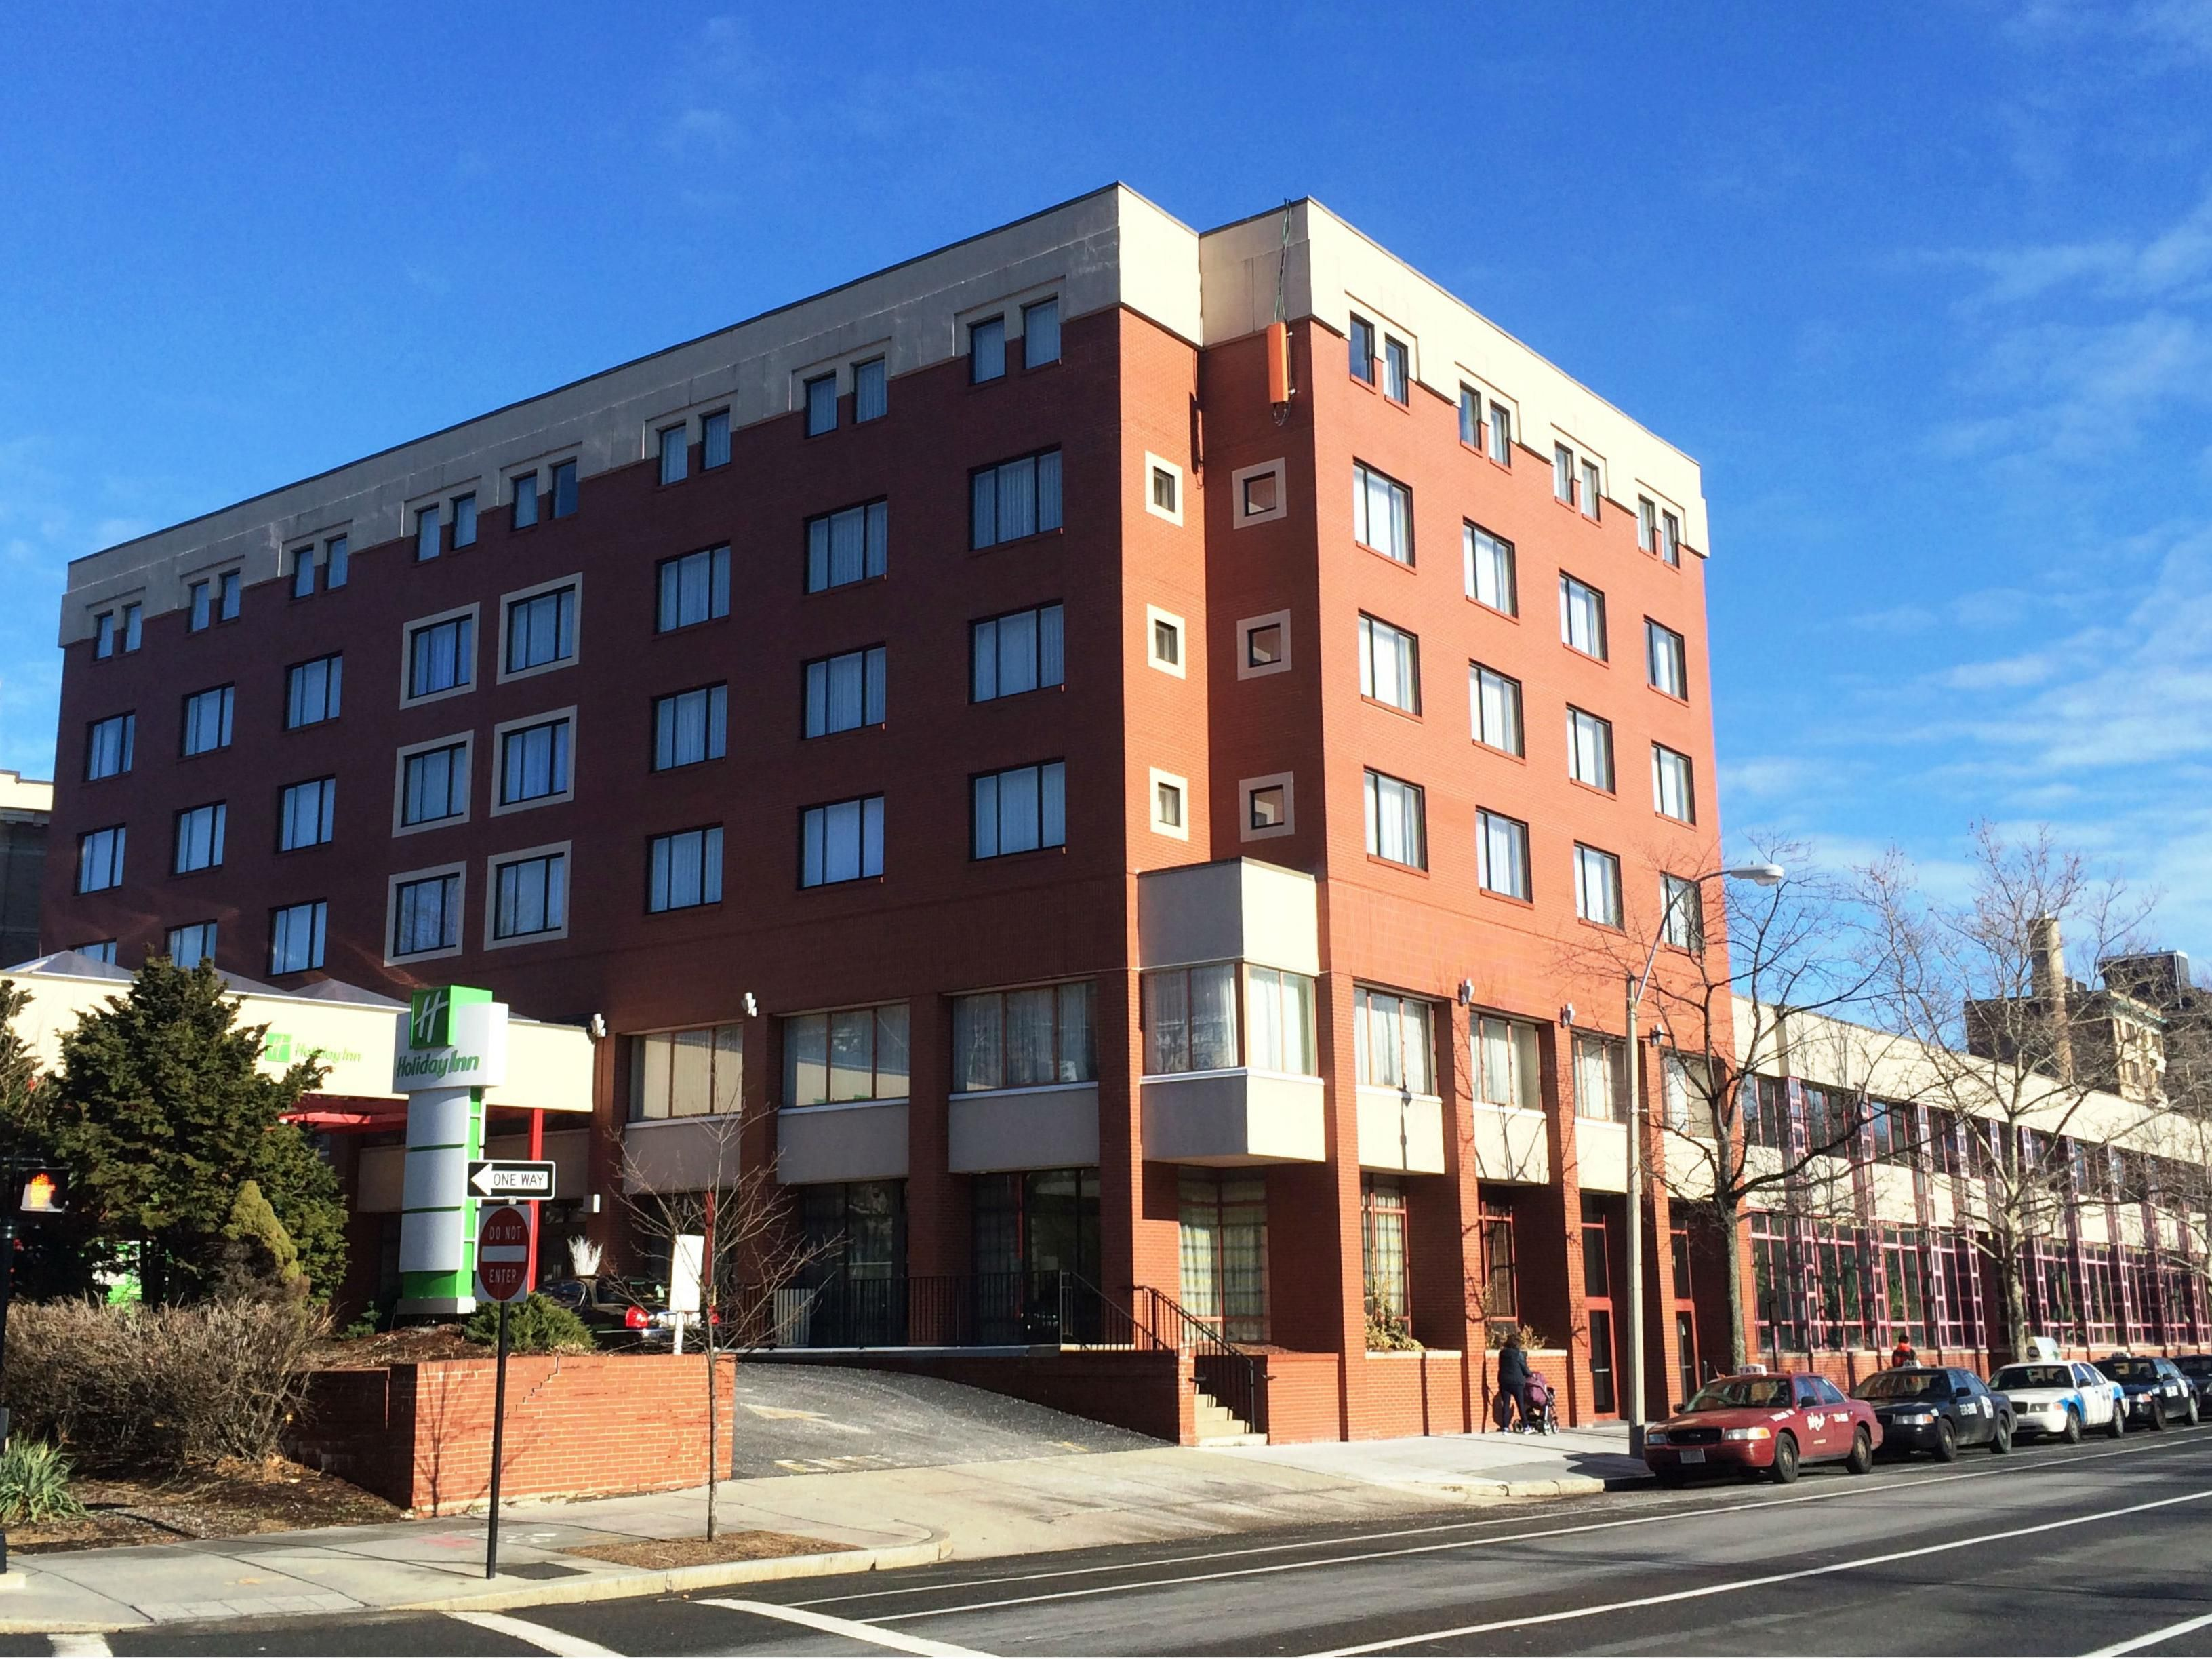 Exterior view of hotel located on the Green Line of the T (MBTA)